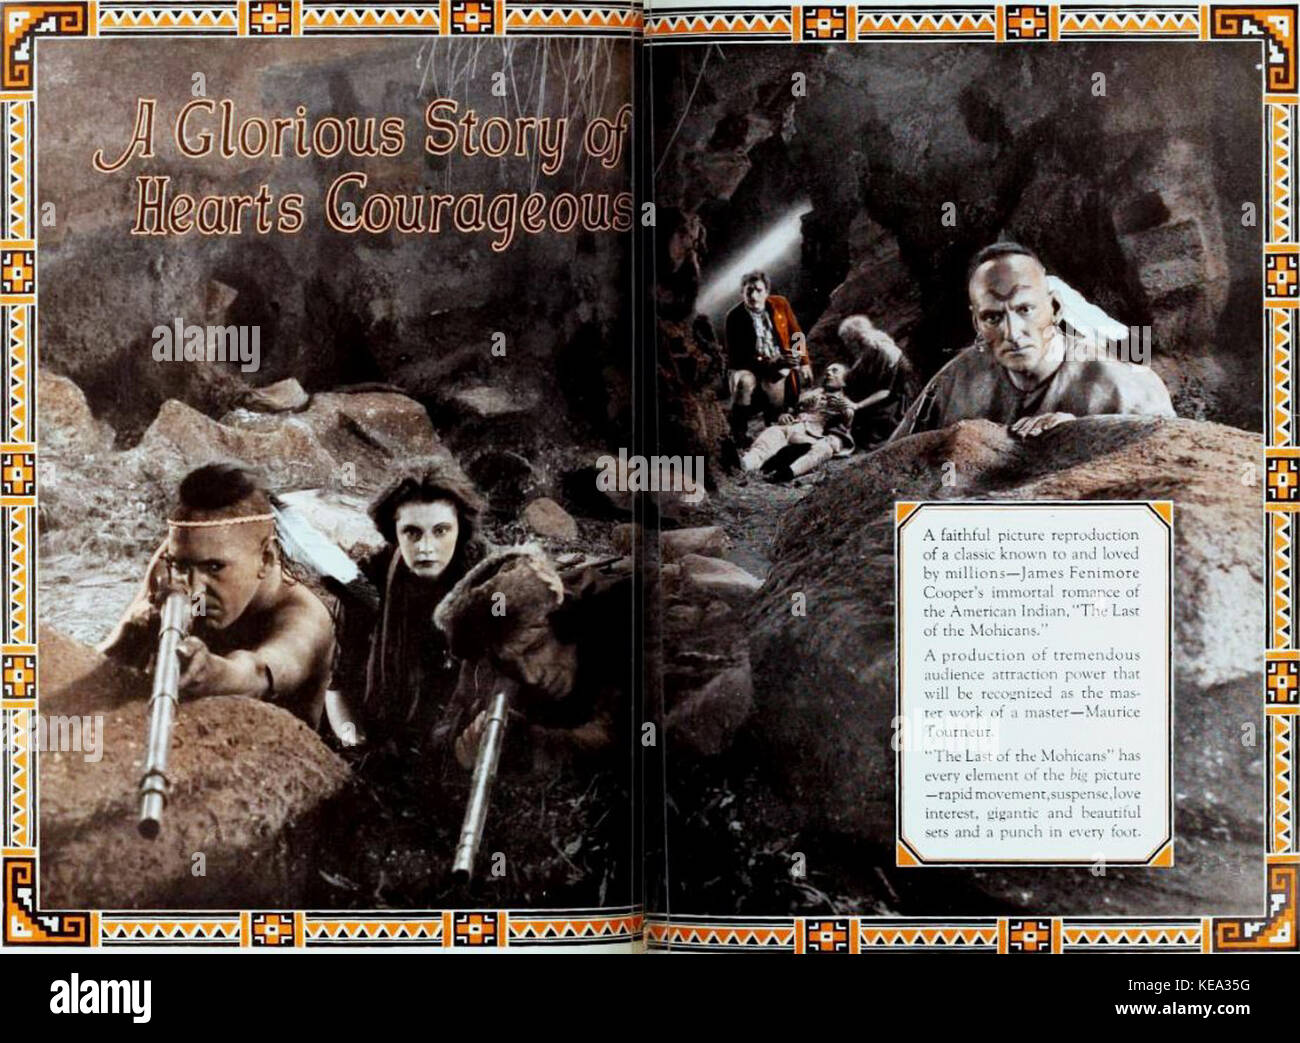 the last of the mohicans accuracy report The last of the mohicans is an action packed  the last of the mohicans - book report 'the last of the mohicans' an accurate portrayal of historical events.